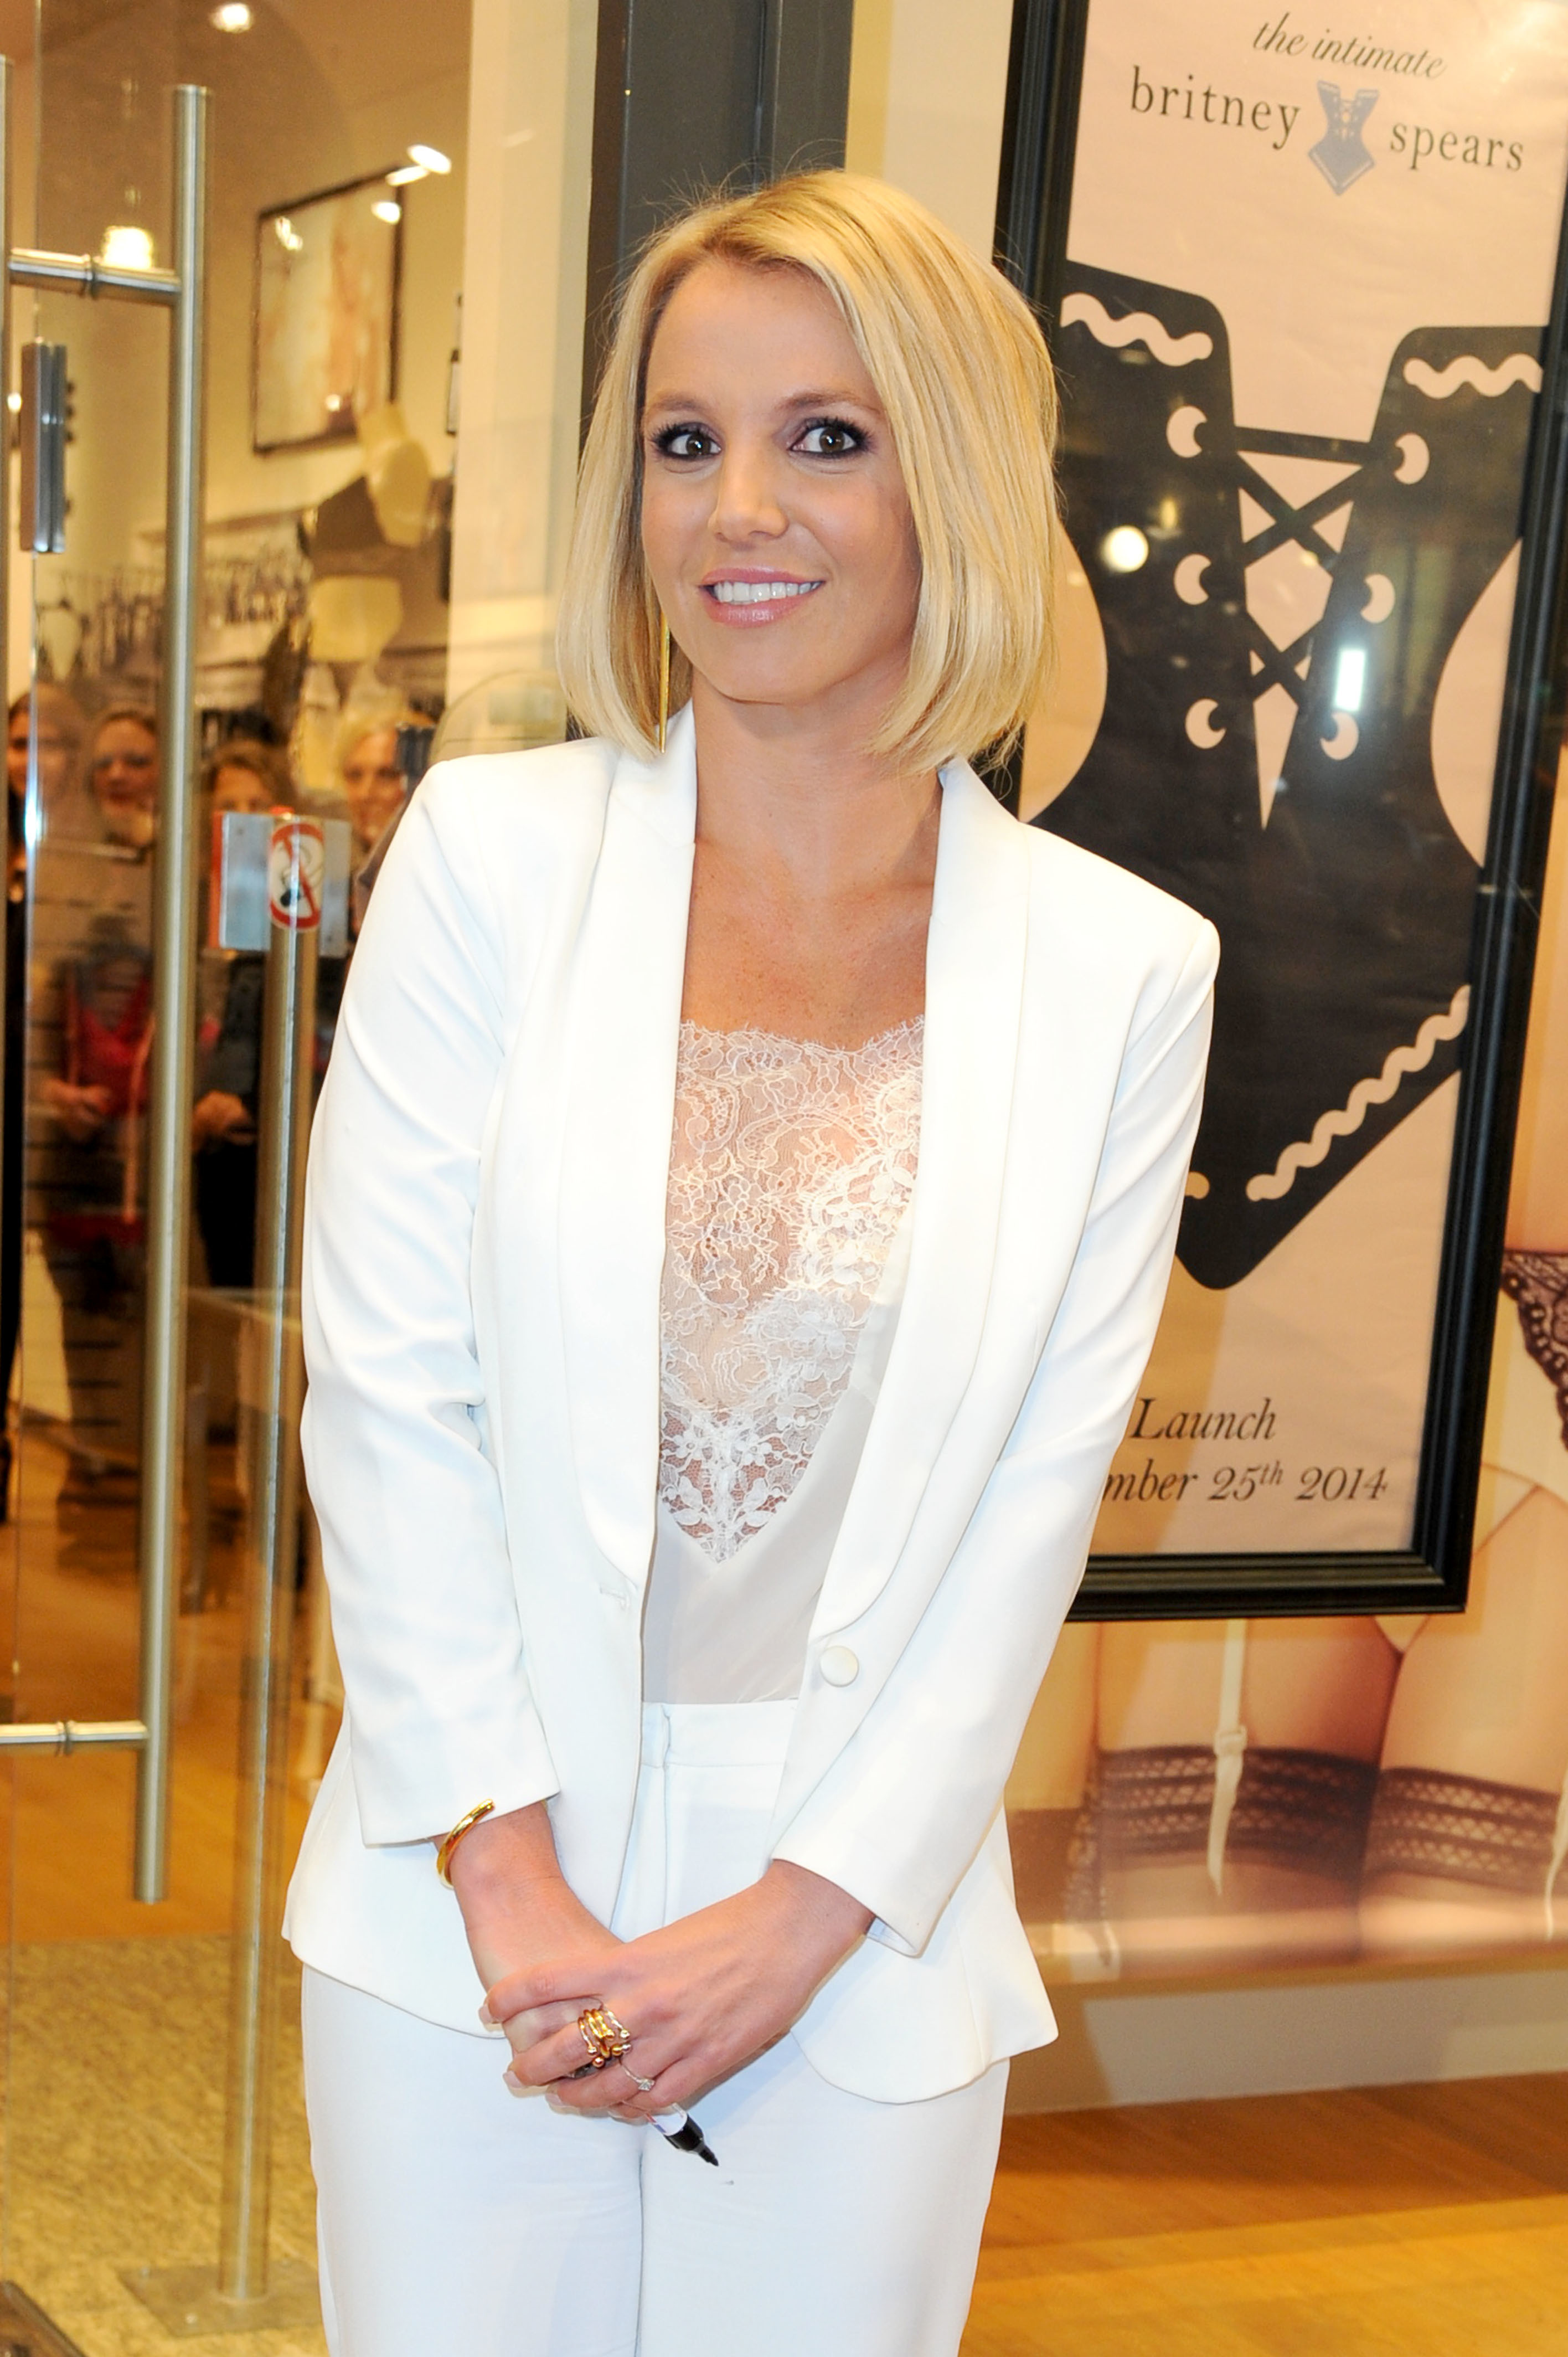 britney spears suit